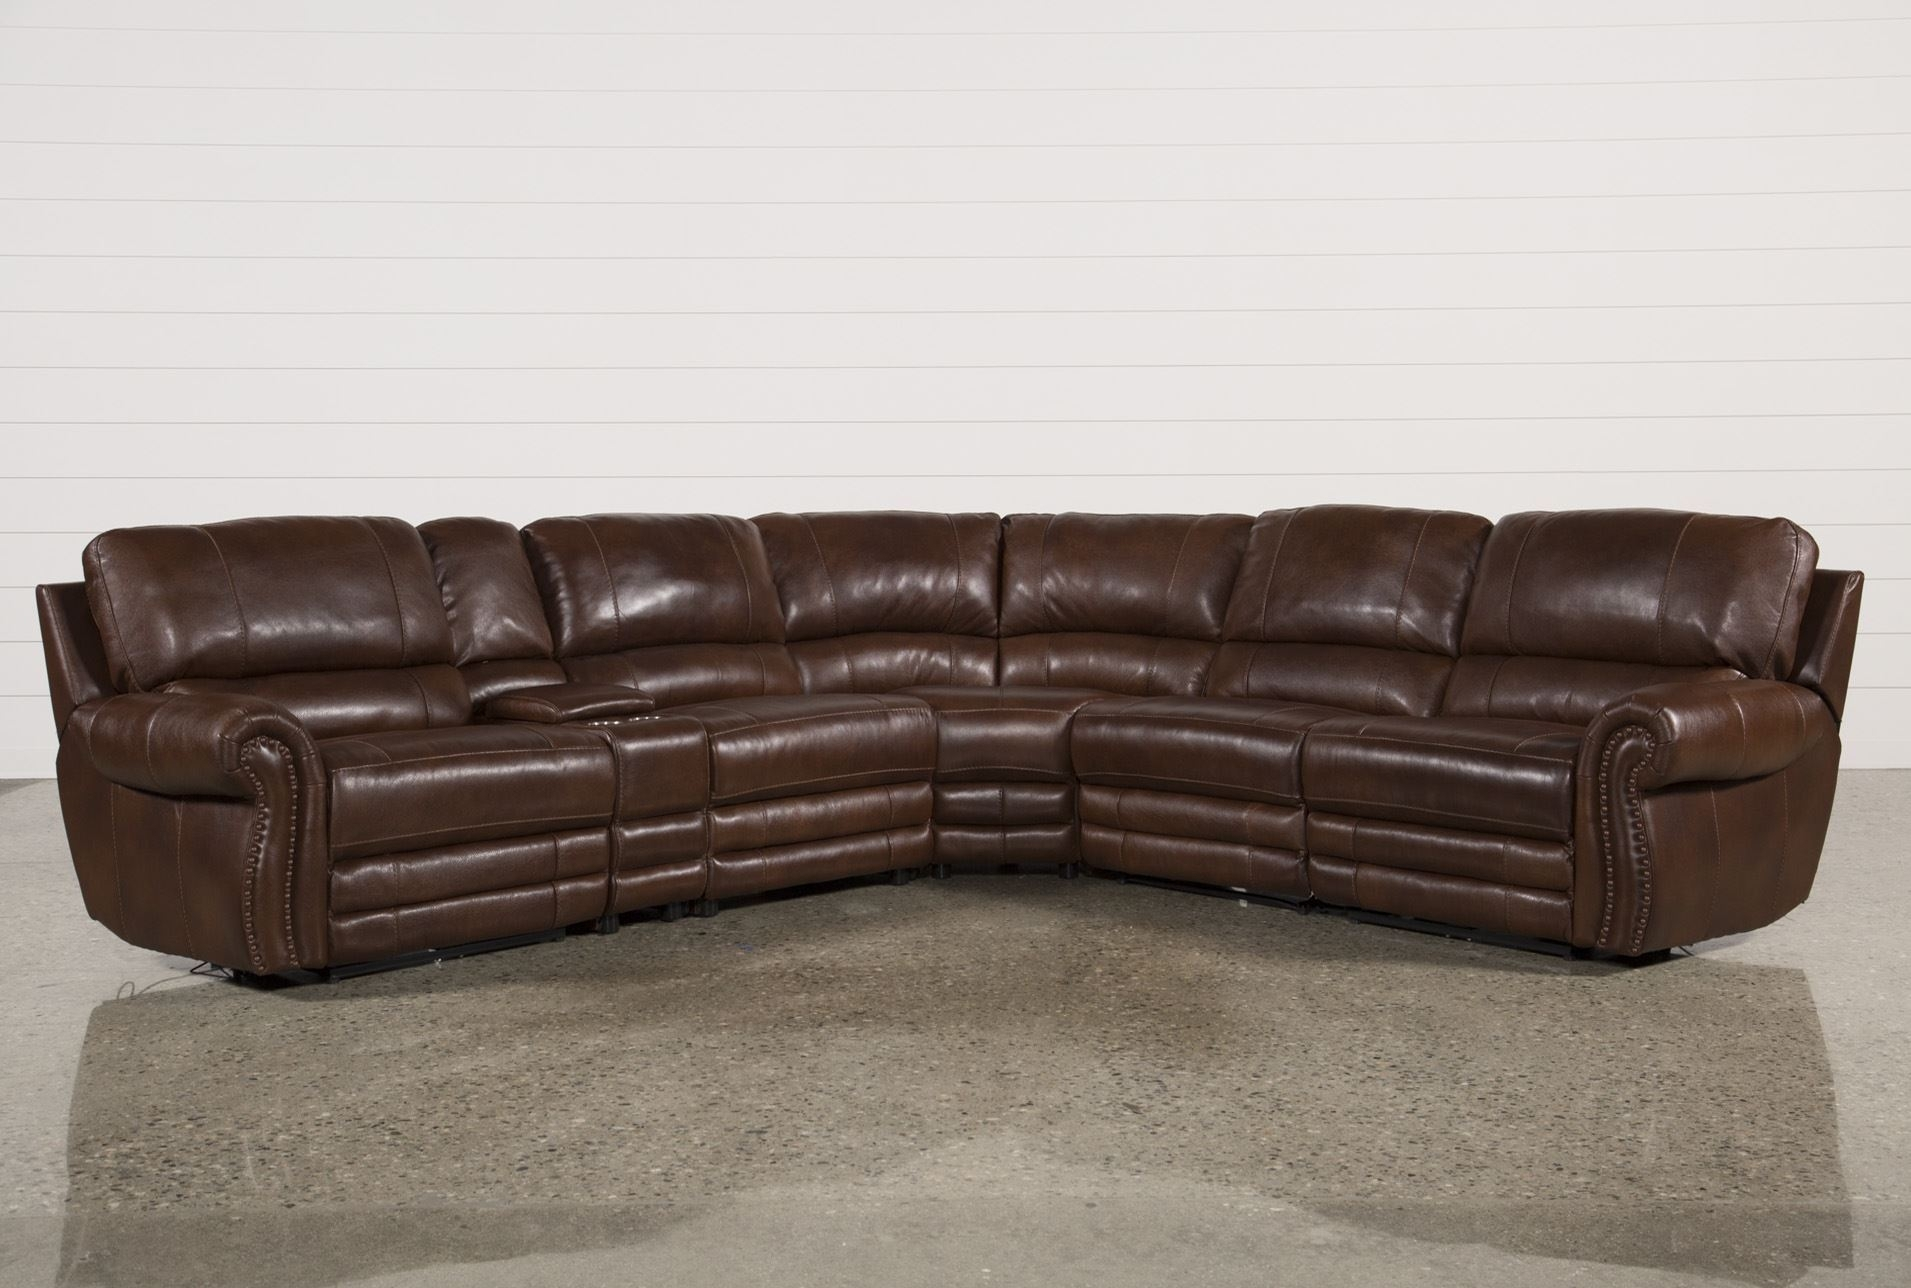 Perfect 6 Piece Leather Sectional Sofa 93 About Remodel With 6 Piece With 6 Piece Leather Sectional Sofas (View 8 of 10)